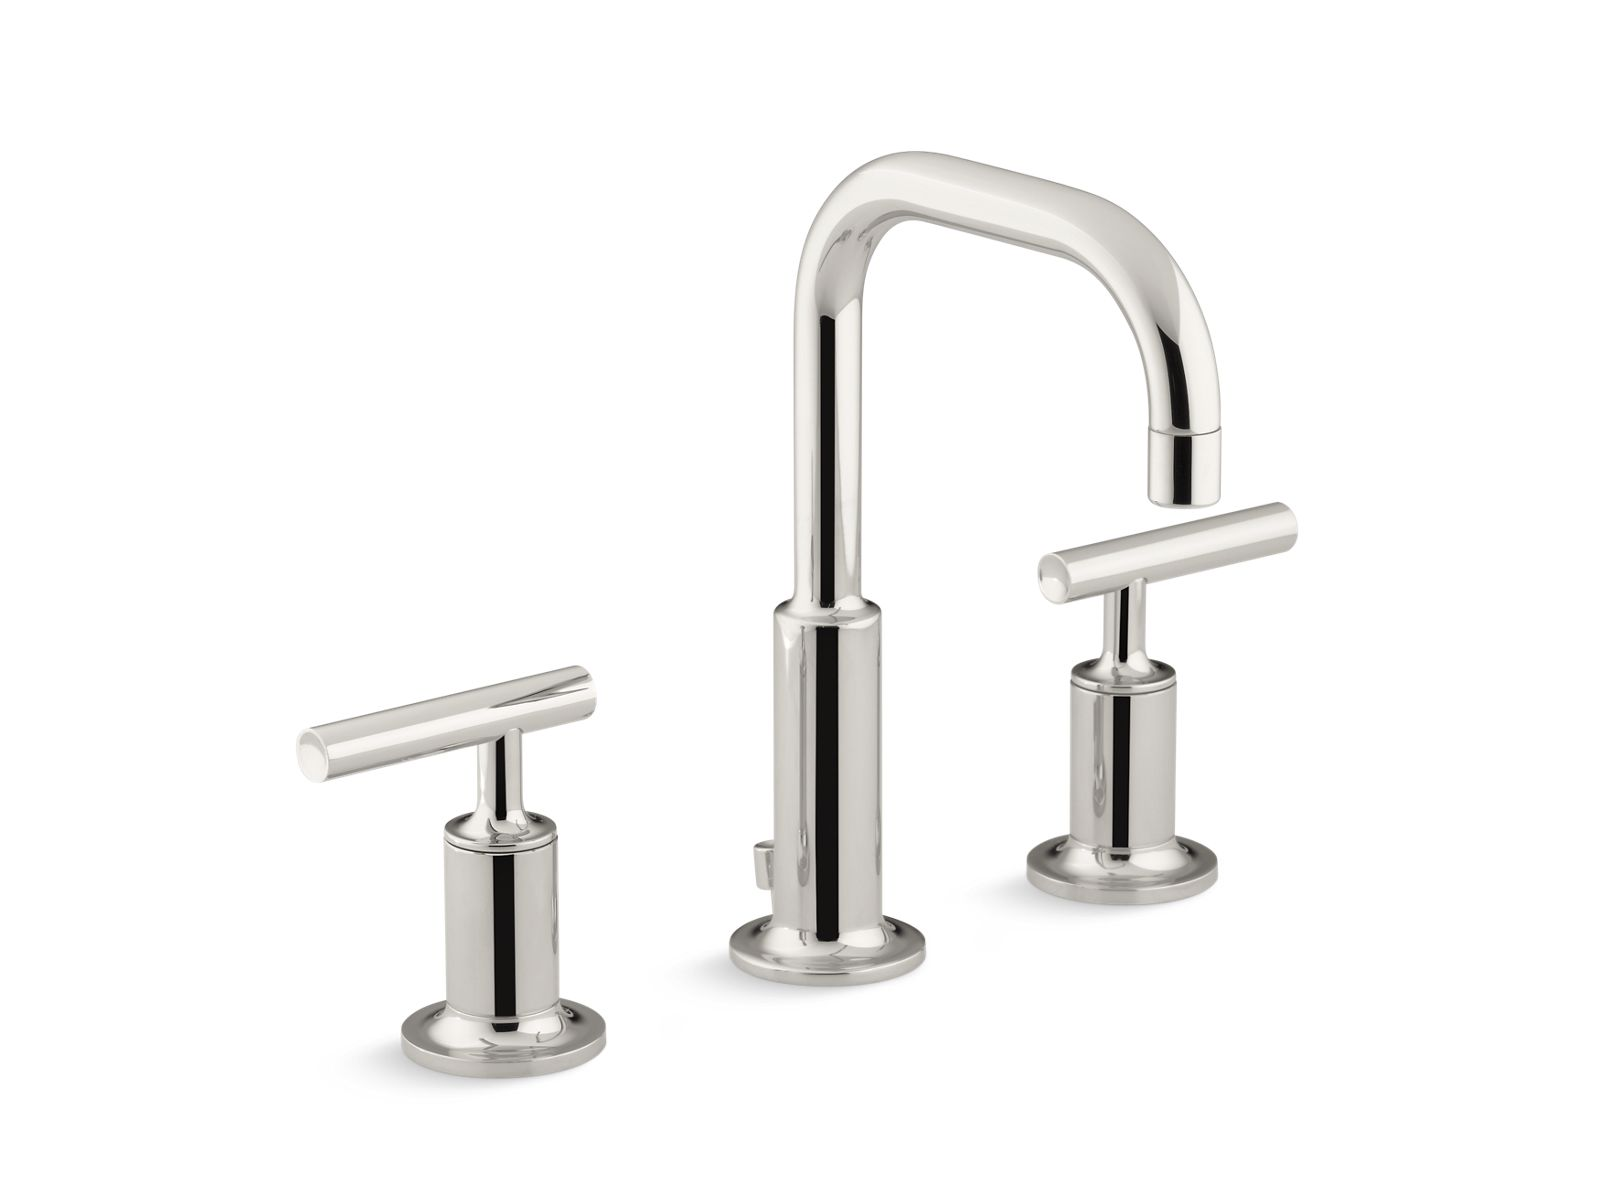 K-14406-4 | Purist Widespread Sink Faucet with Low Lever Handles | KOHLER